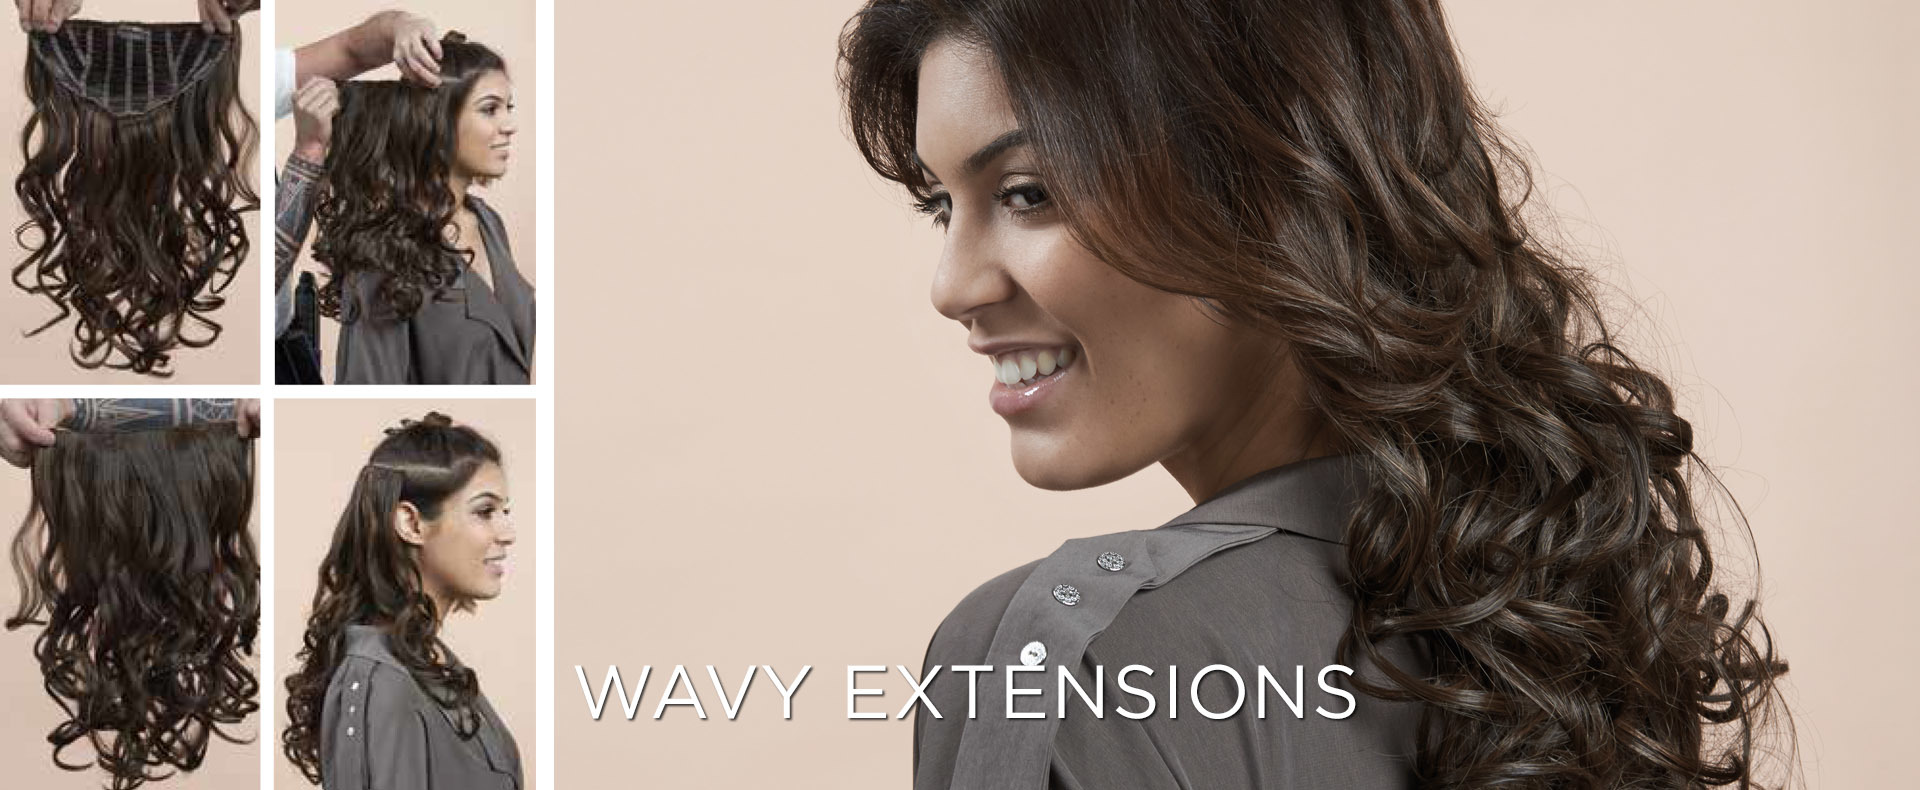 WAVY EXTENSION (© Great Lengths)